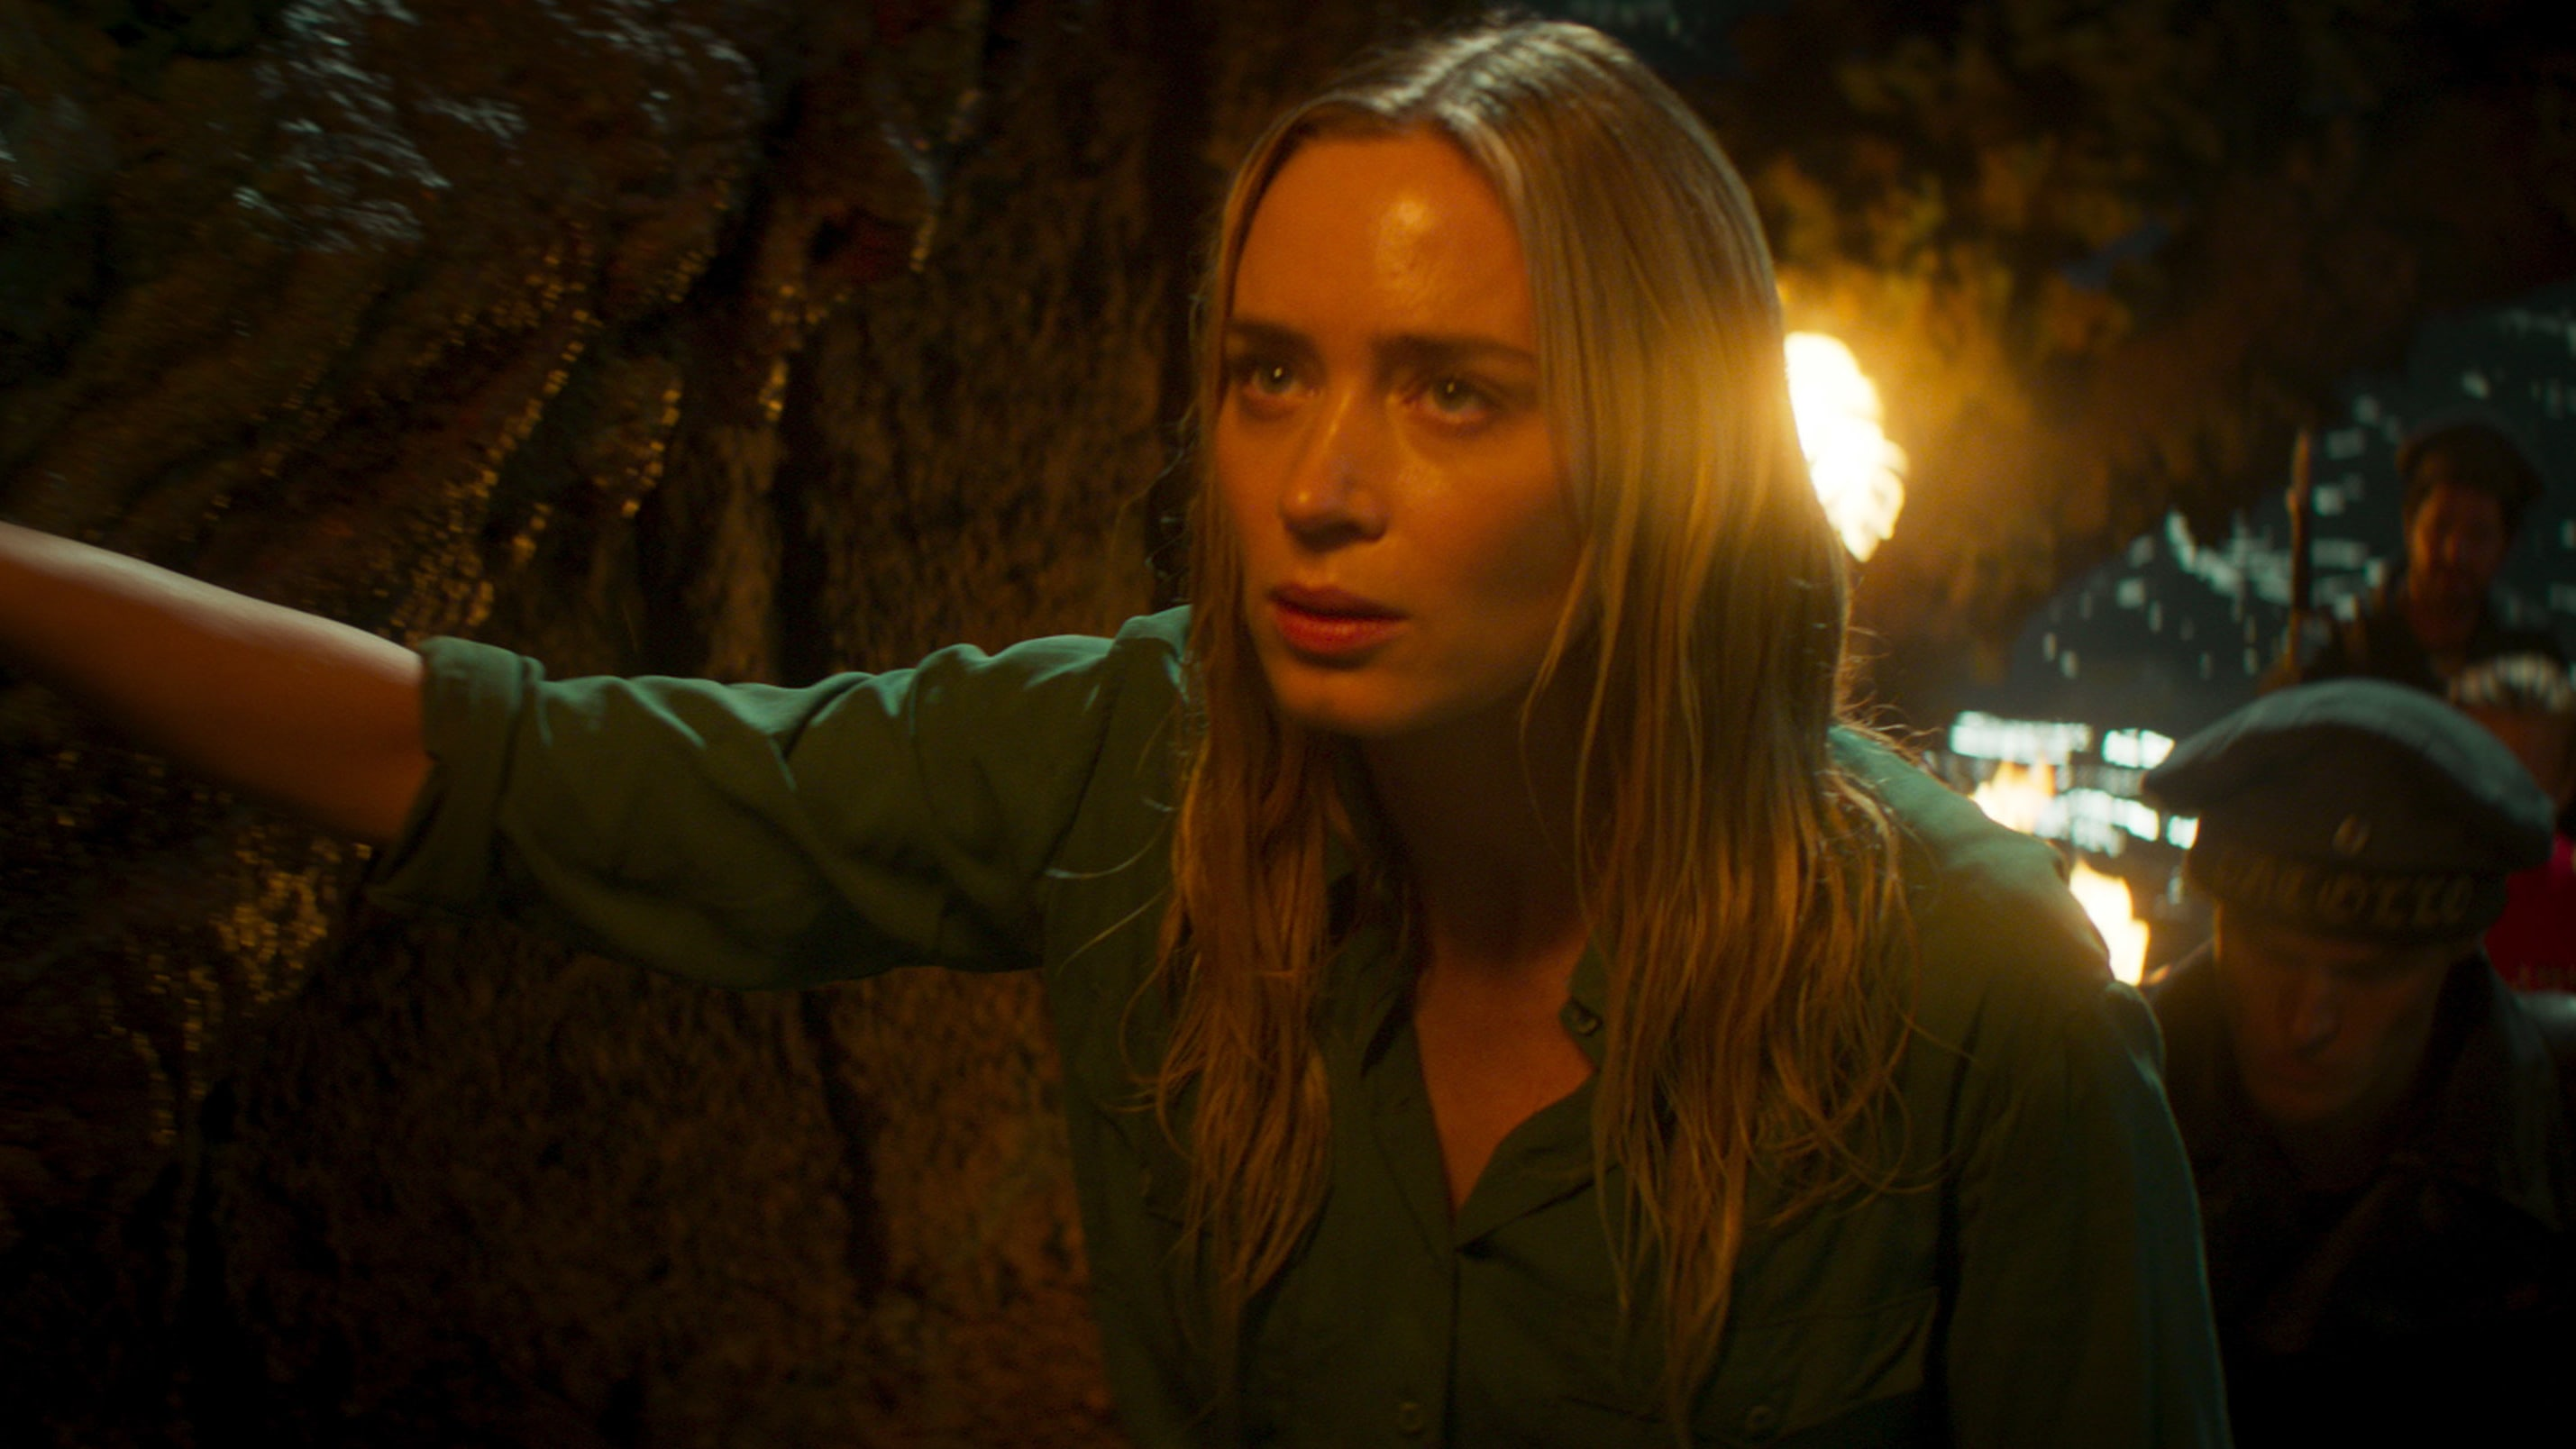 Emily Blunt as Lily Houghton in Disney's JUNGLE CRUISE. Photo courtesy of Disney. © 2021 Disney Enterprises, Inc. All Rights Reserved.